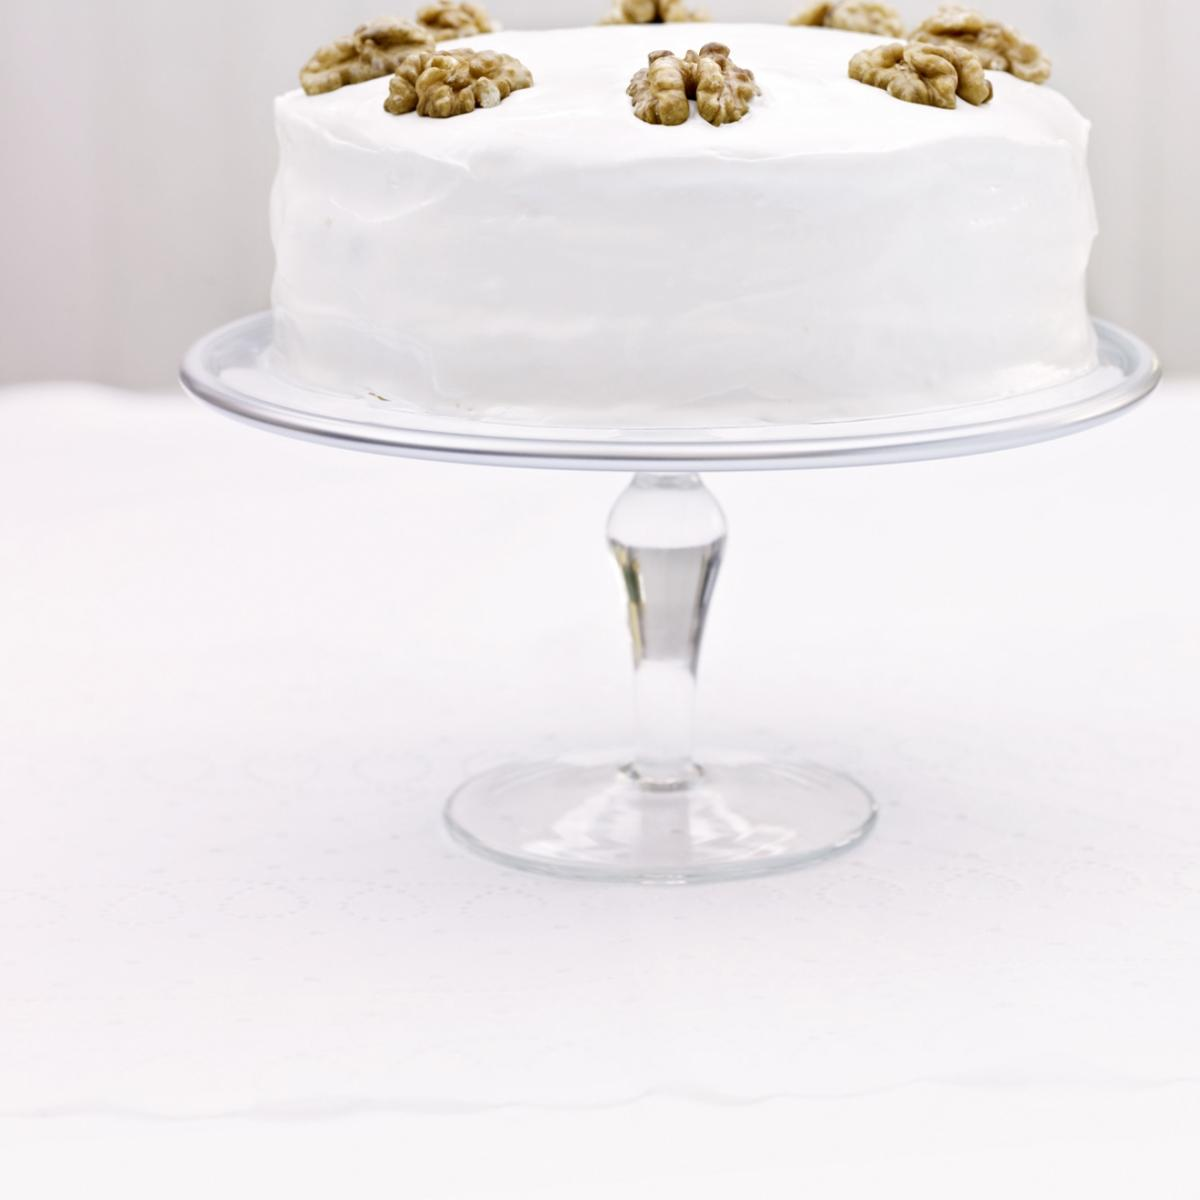 A picture of Delia's Iced English Walnut Cake recipe